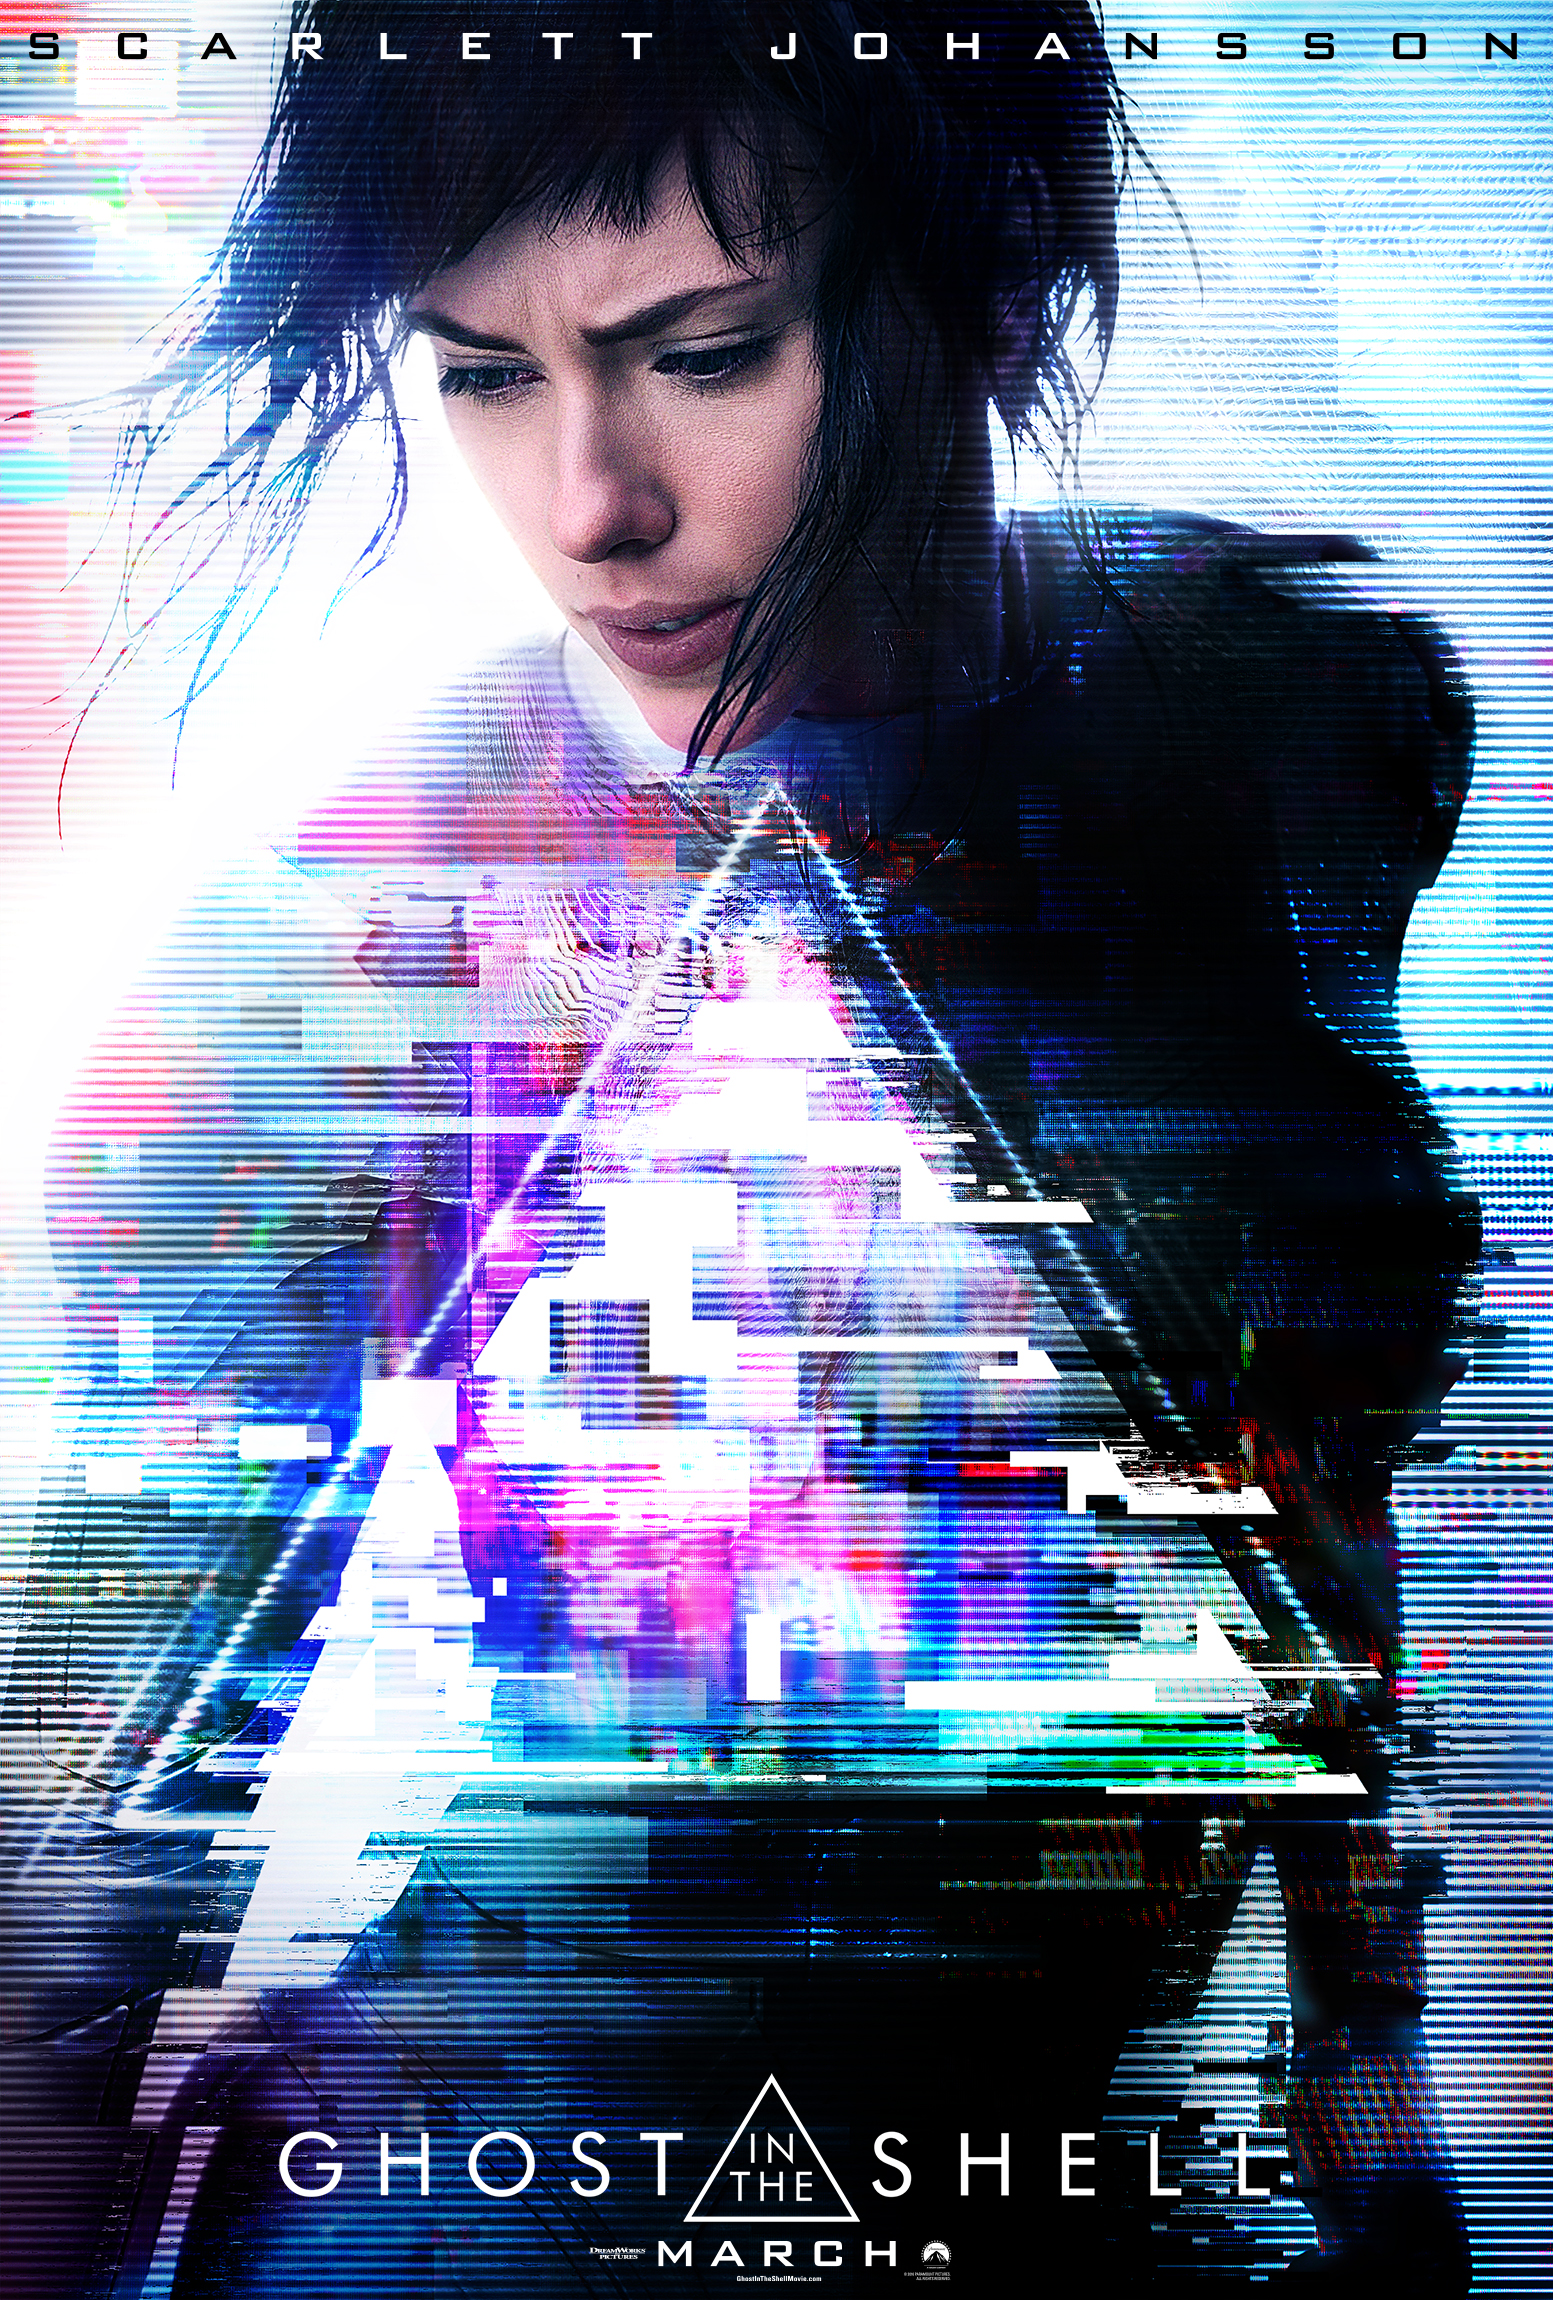 ghostintheshell-poster1a